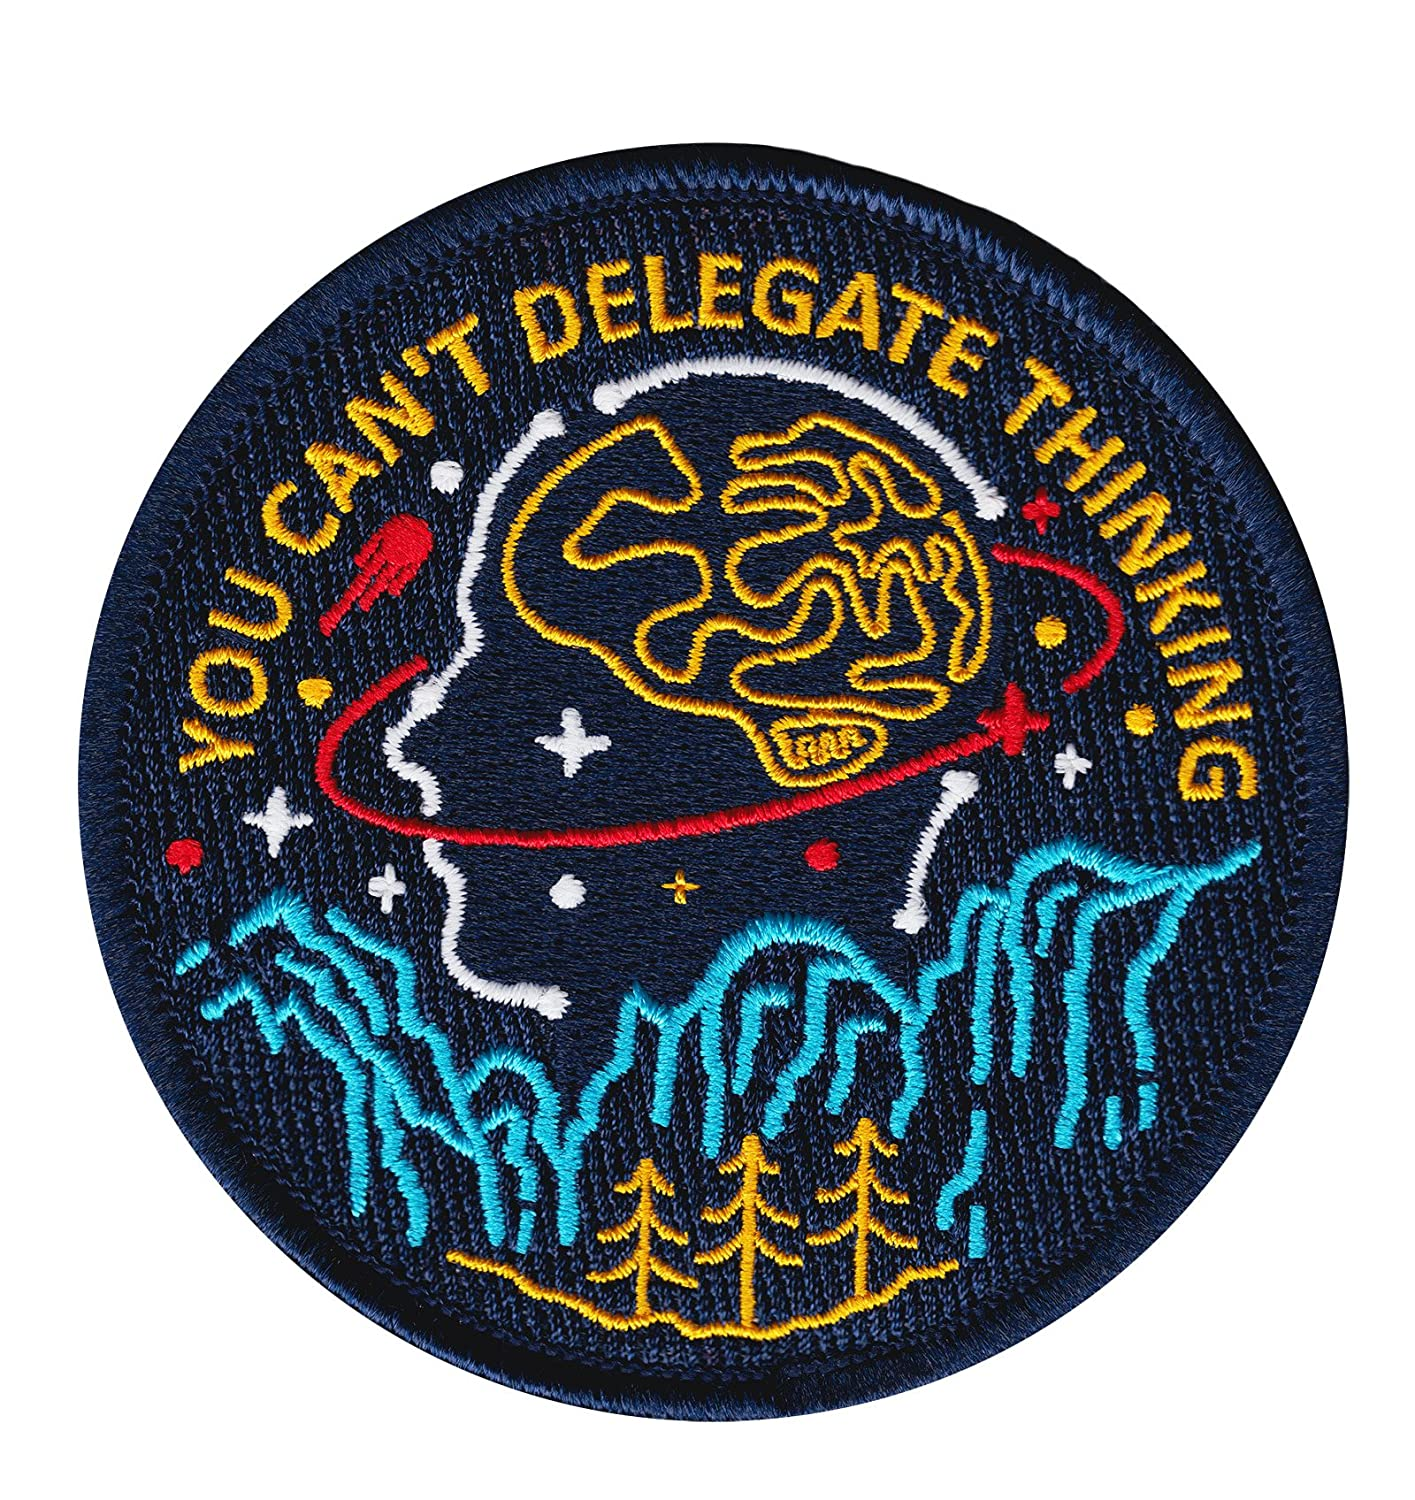 Asilda Store You Can't Delegate Thinking Iron-on Embroidered Patch 4337027060